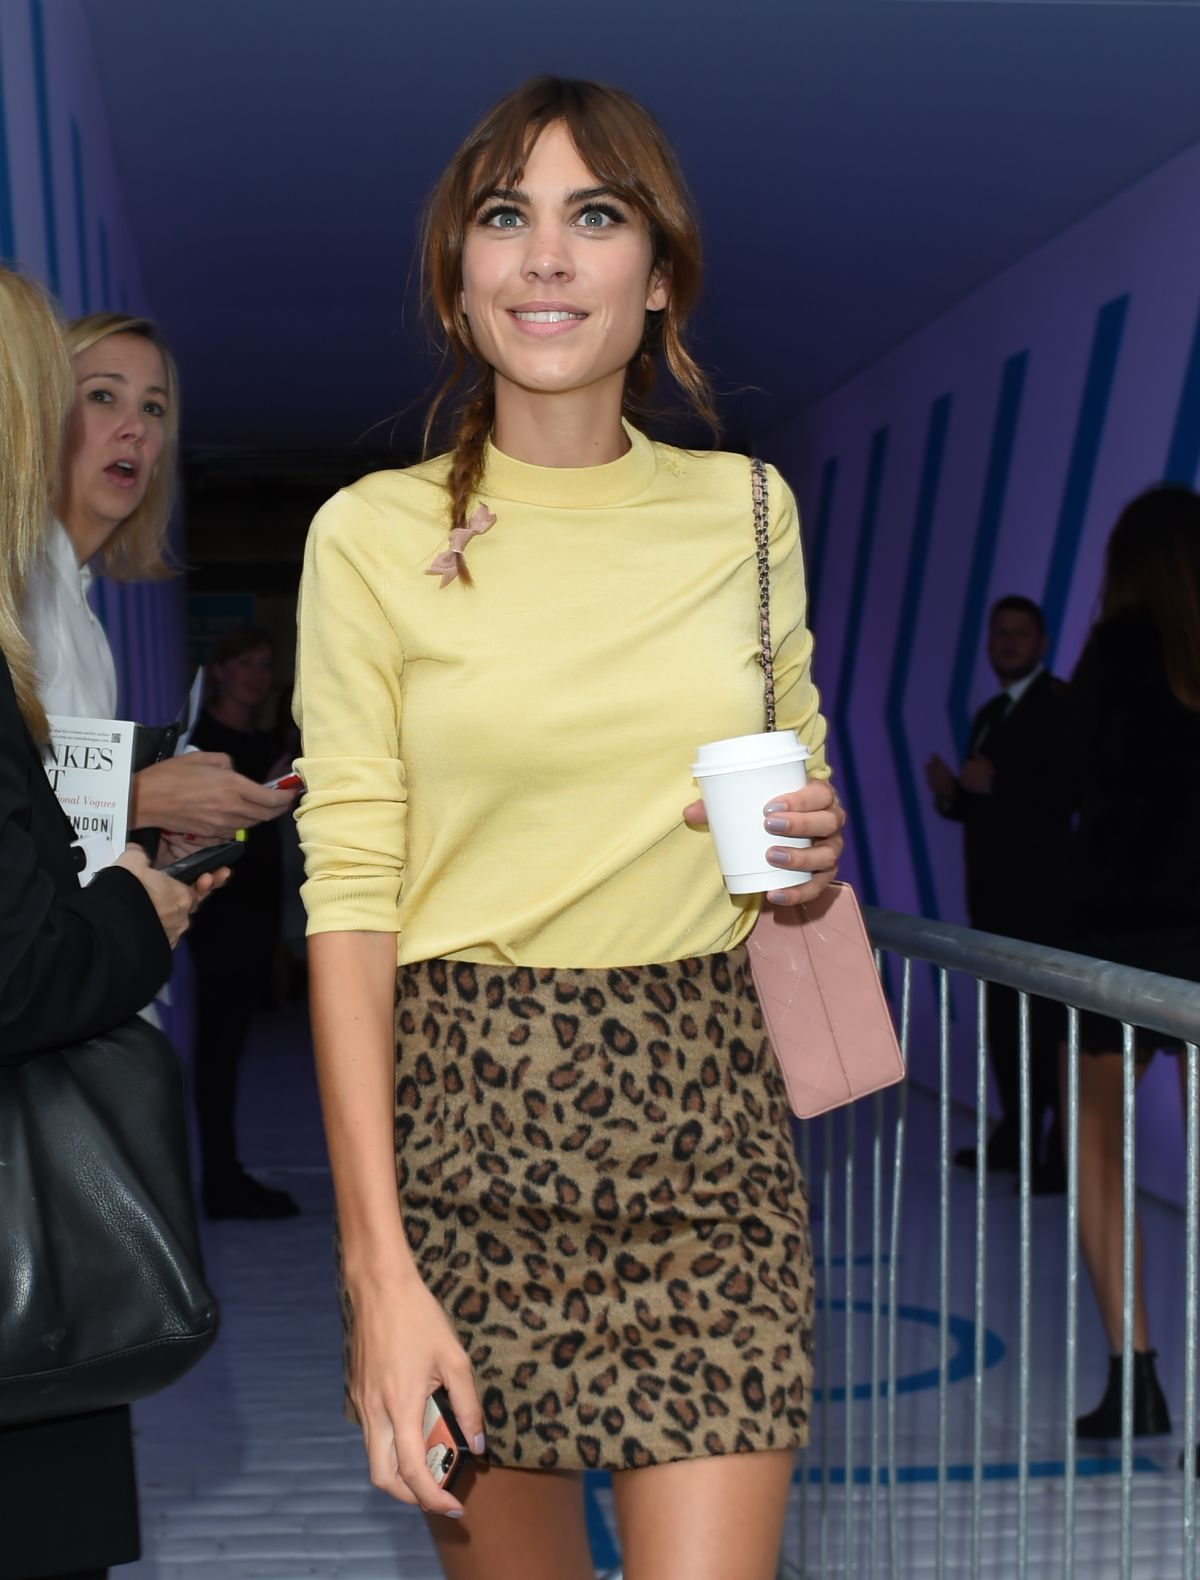 ALEXA CHUNG at Topshop Unique Show at London Fashion Week